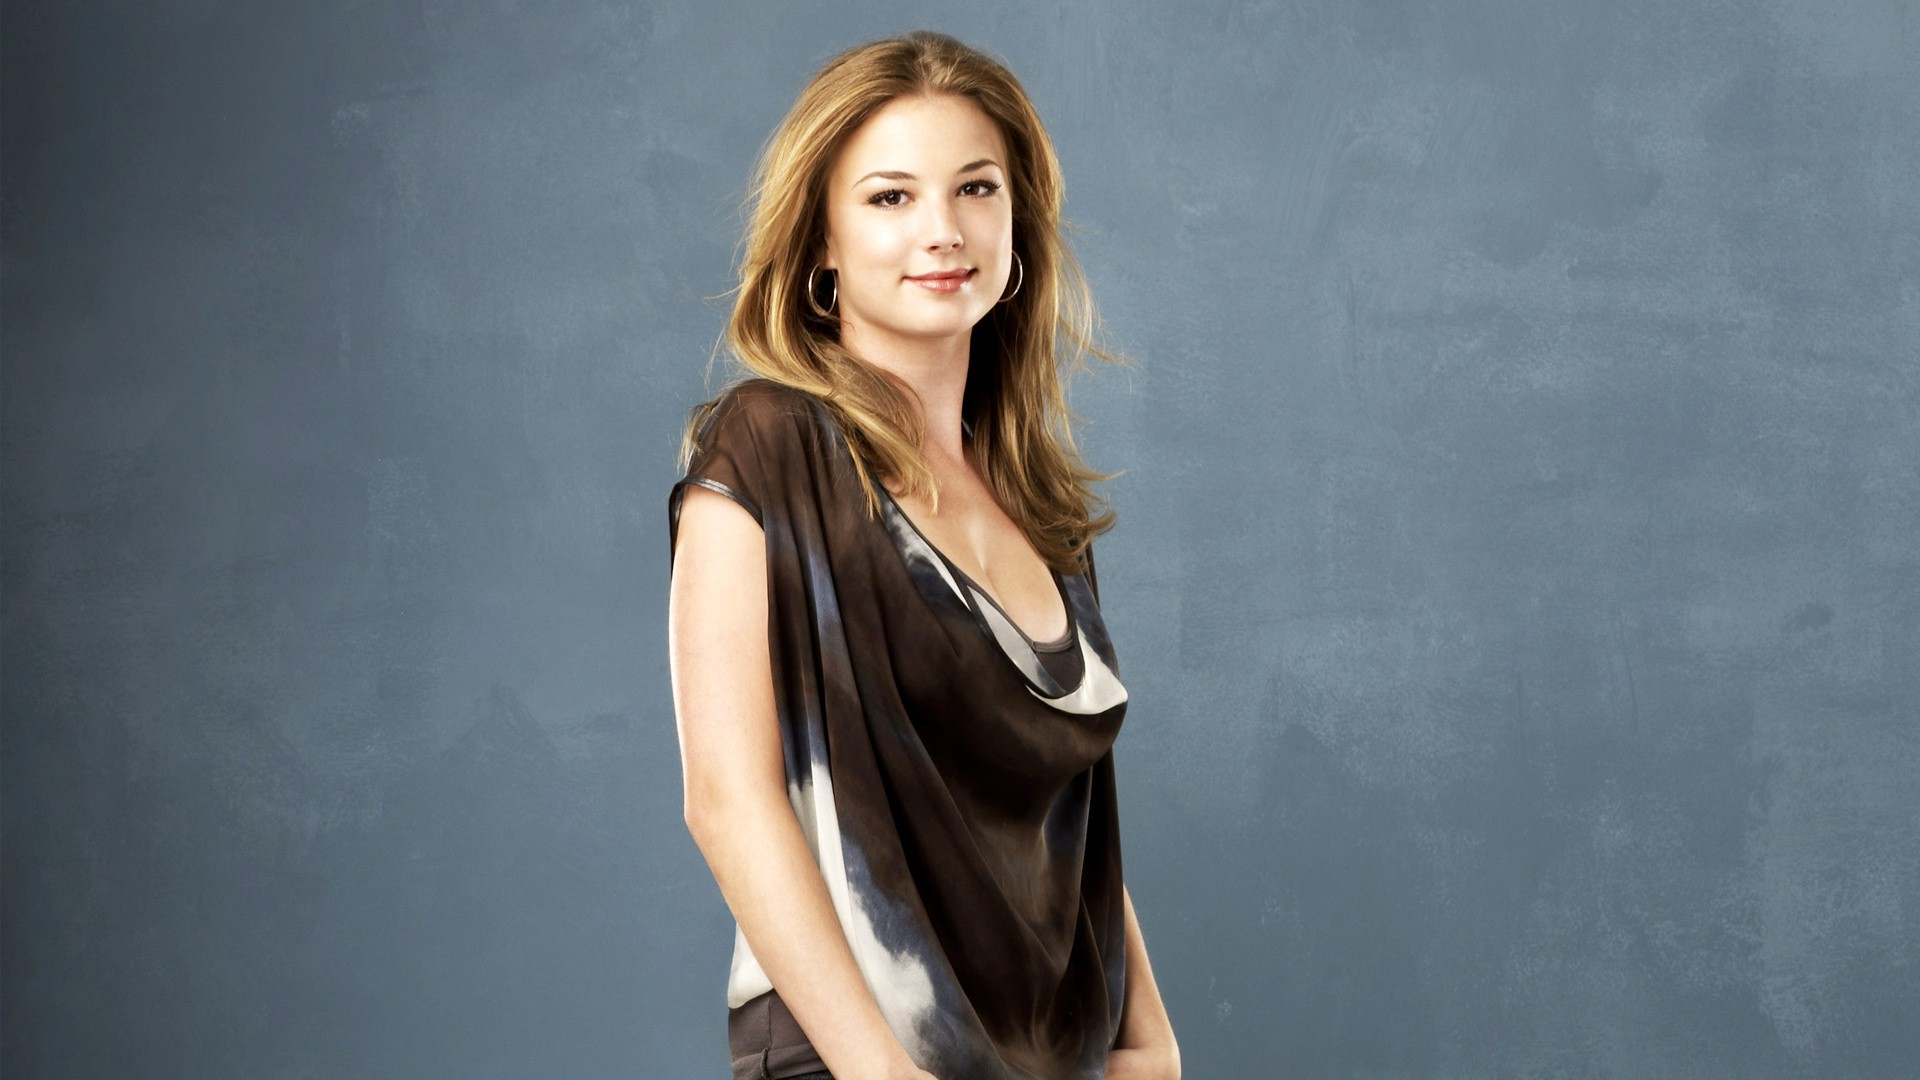 emily vancamp wallpaper background